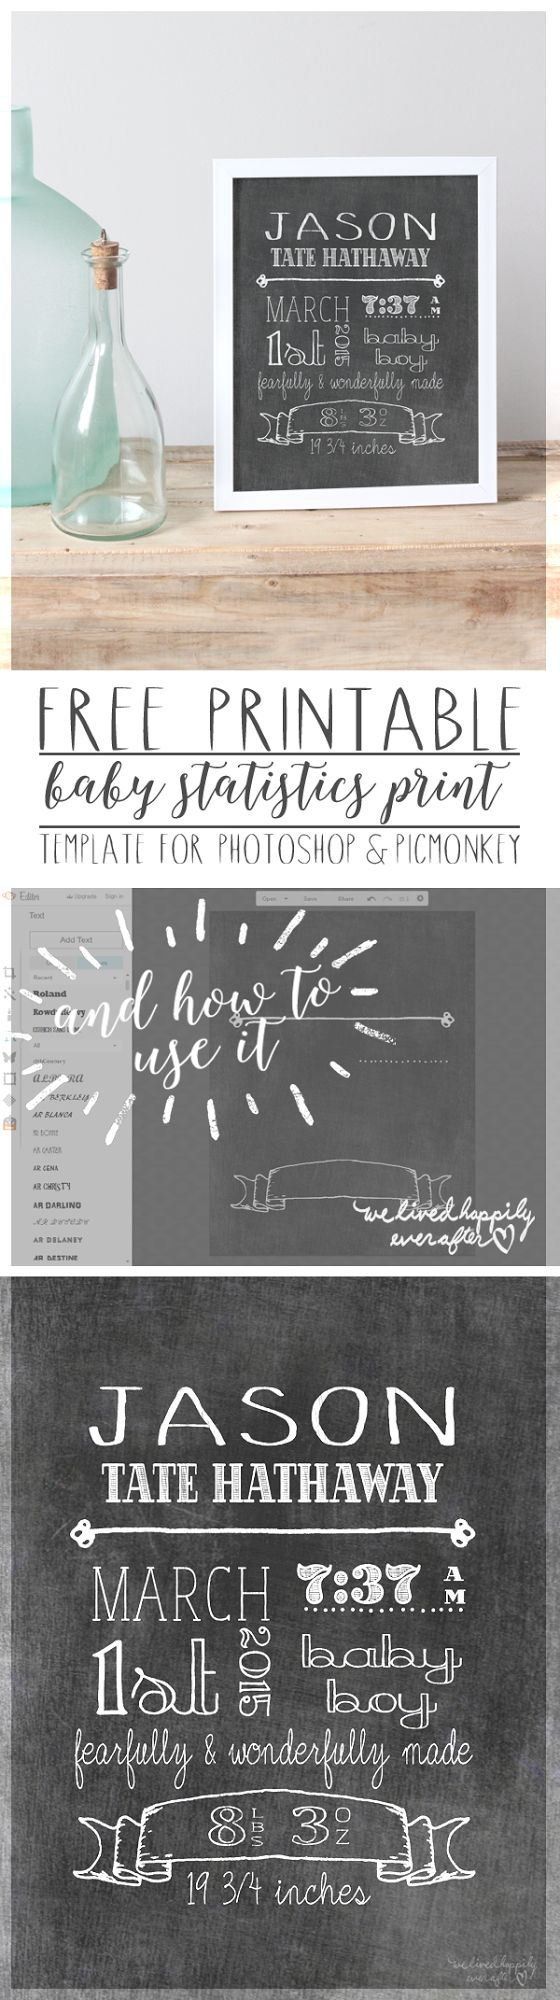 Free Baby Statistics Printable Template (for Picmonkey & Photoshop)